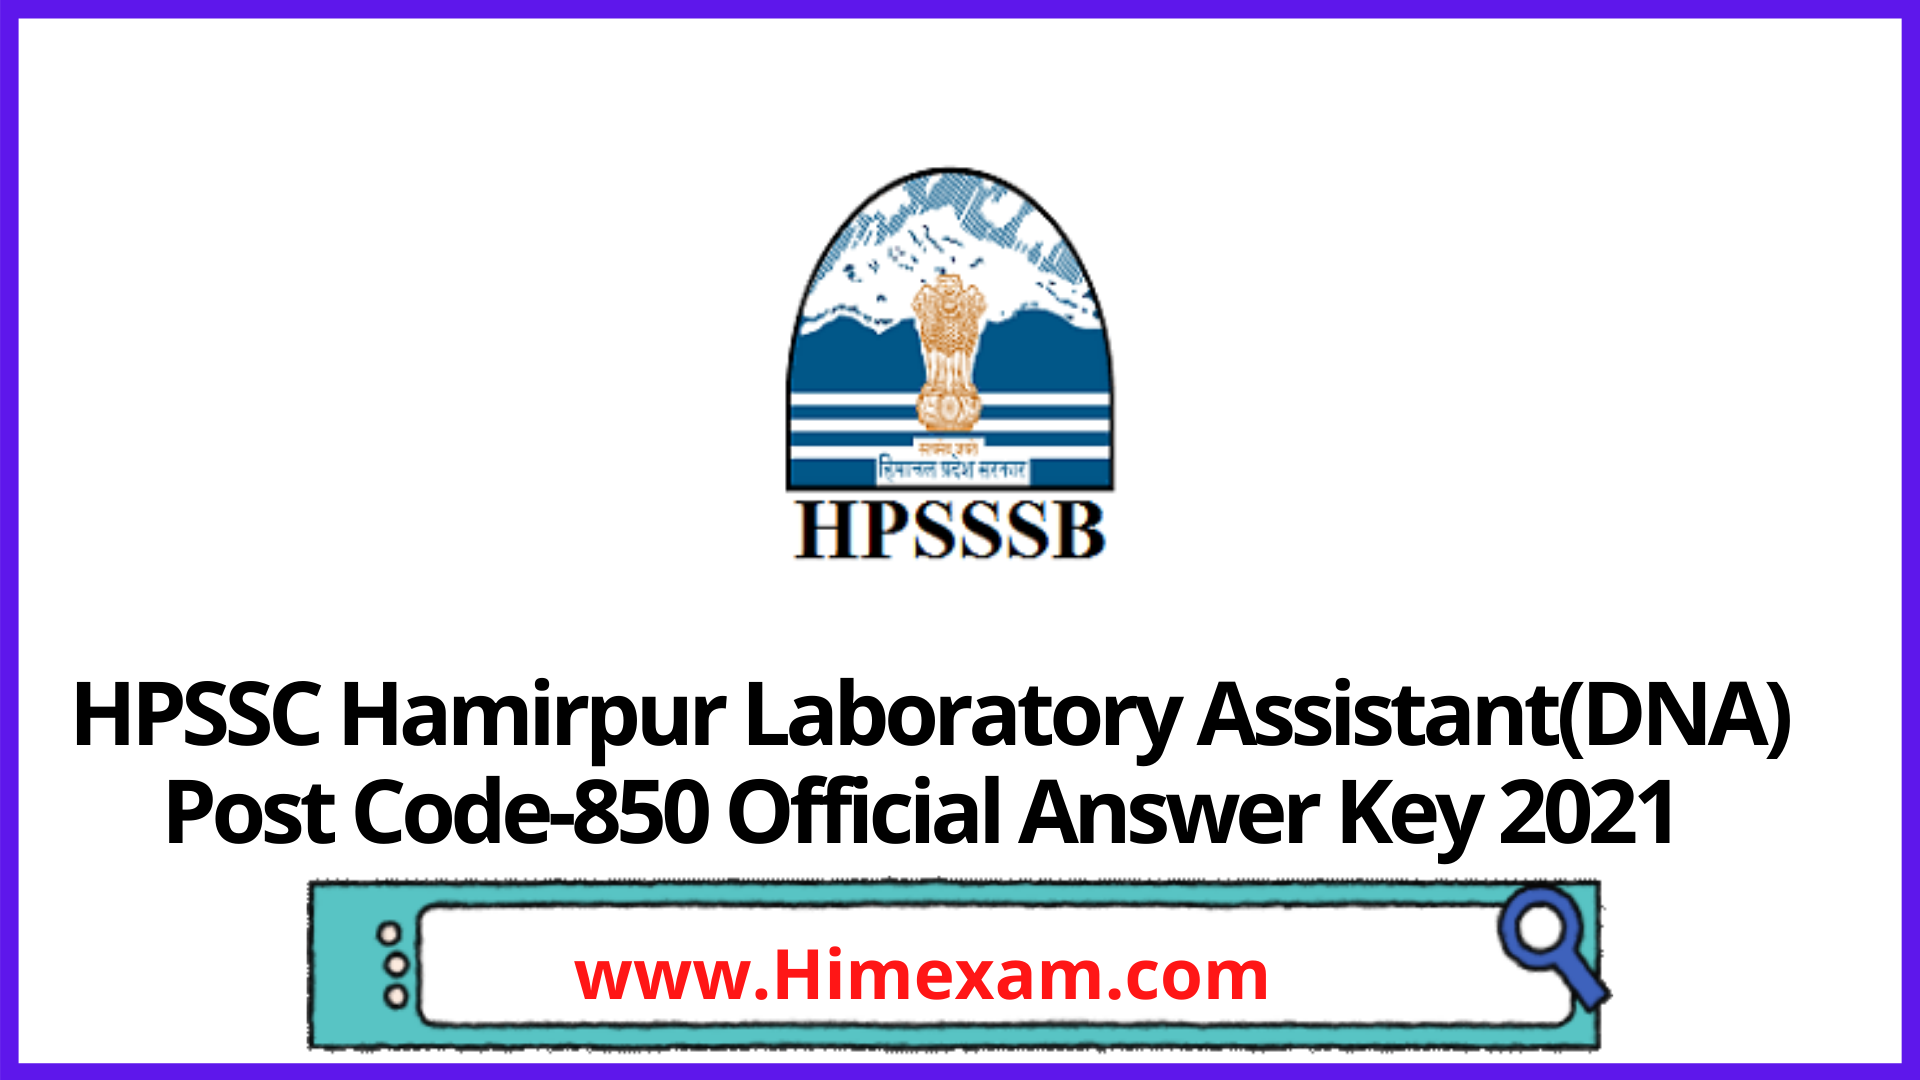 HPSSC Hamirpur Laboratory Assistant(DNA) Post Code-850 Official Answer Key 2021